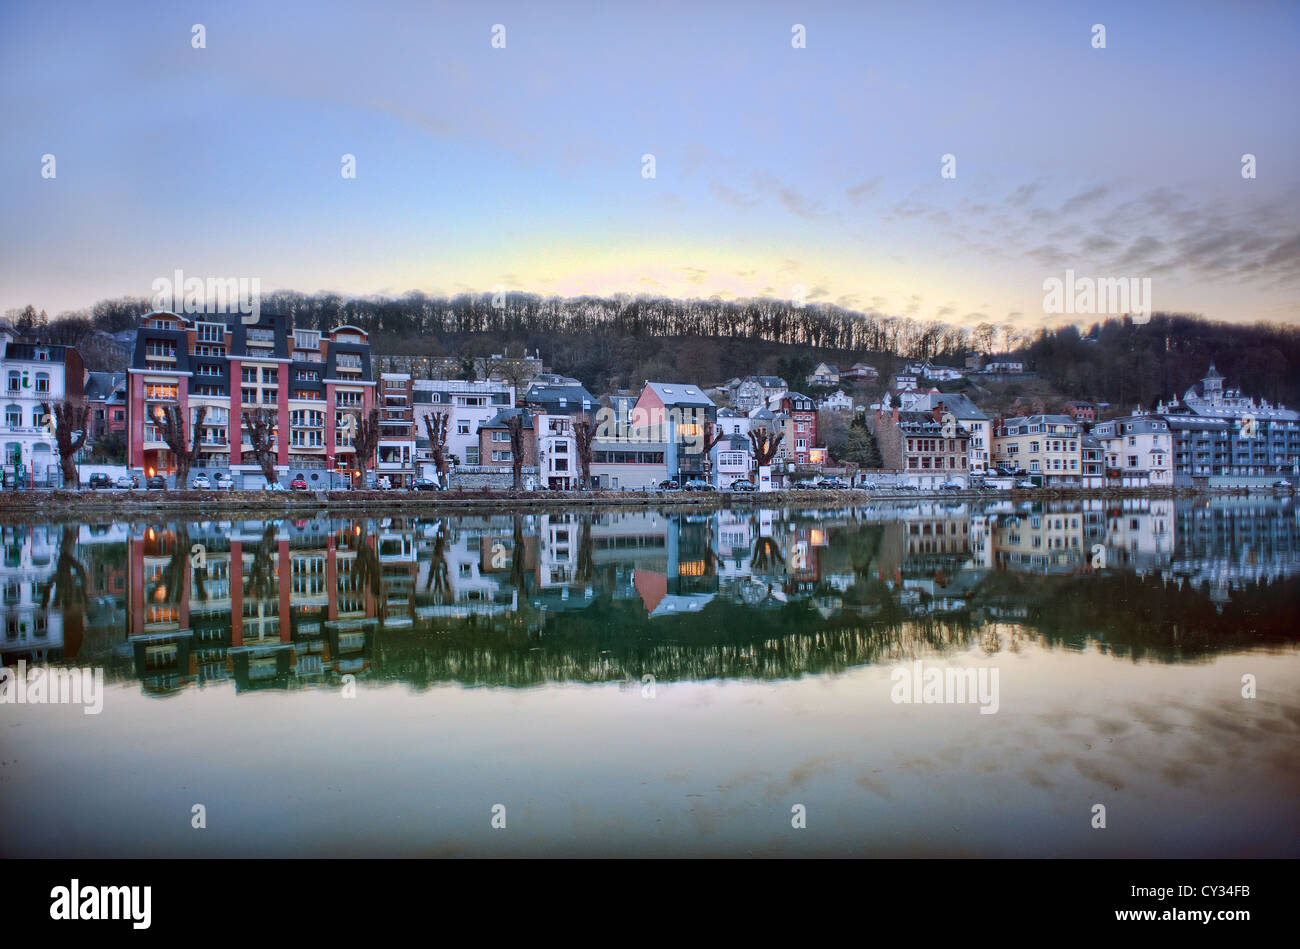 Houses and shops are reflected in the Meuse river at dusk in the Belgian town of Dinant in the Ardennes. - Stock Image